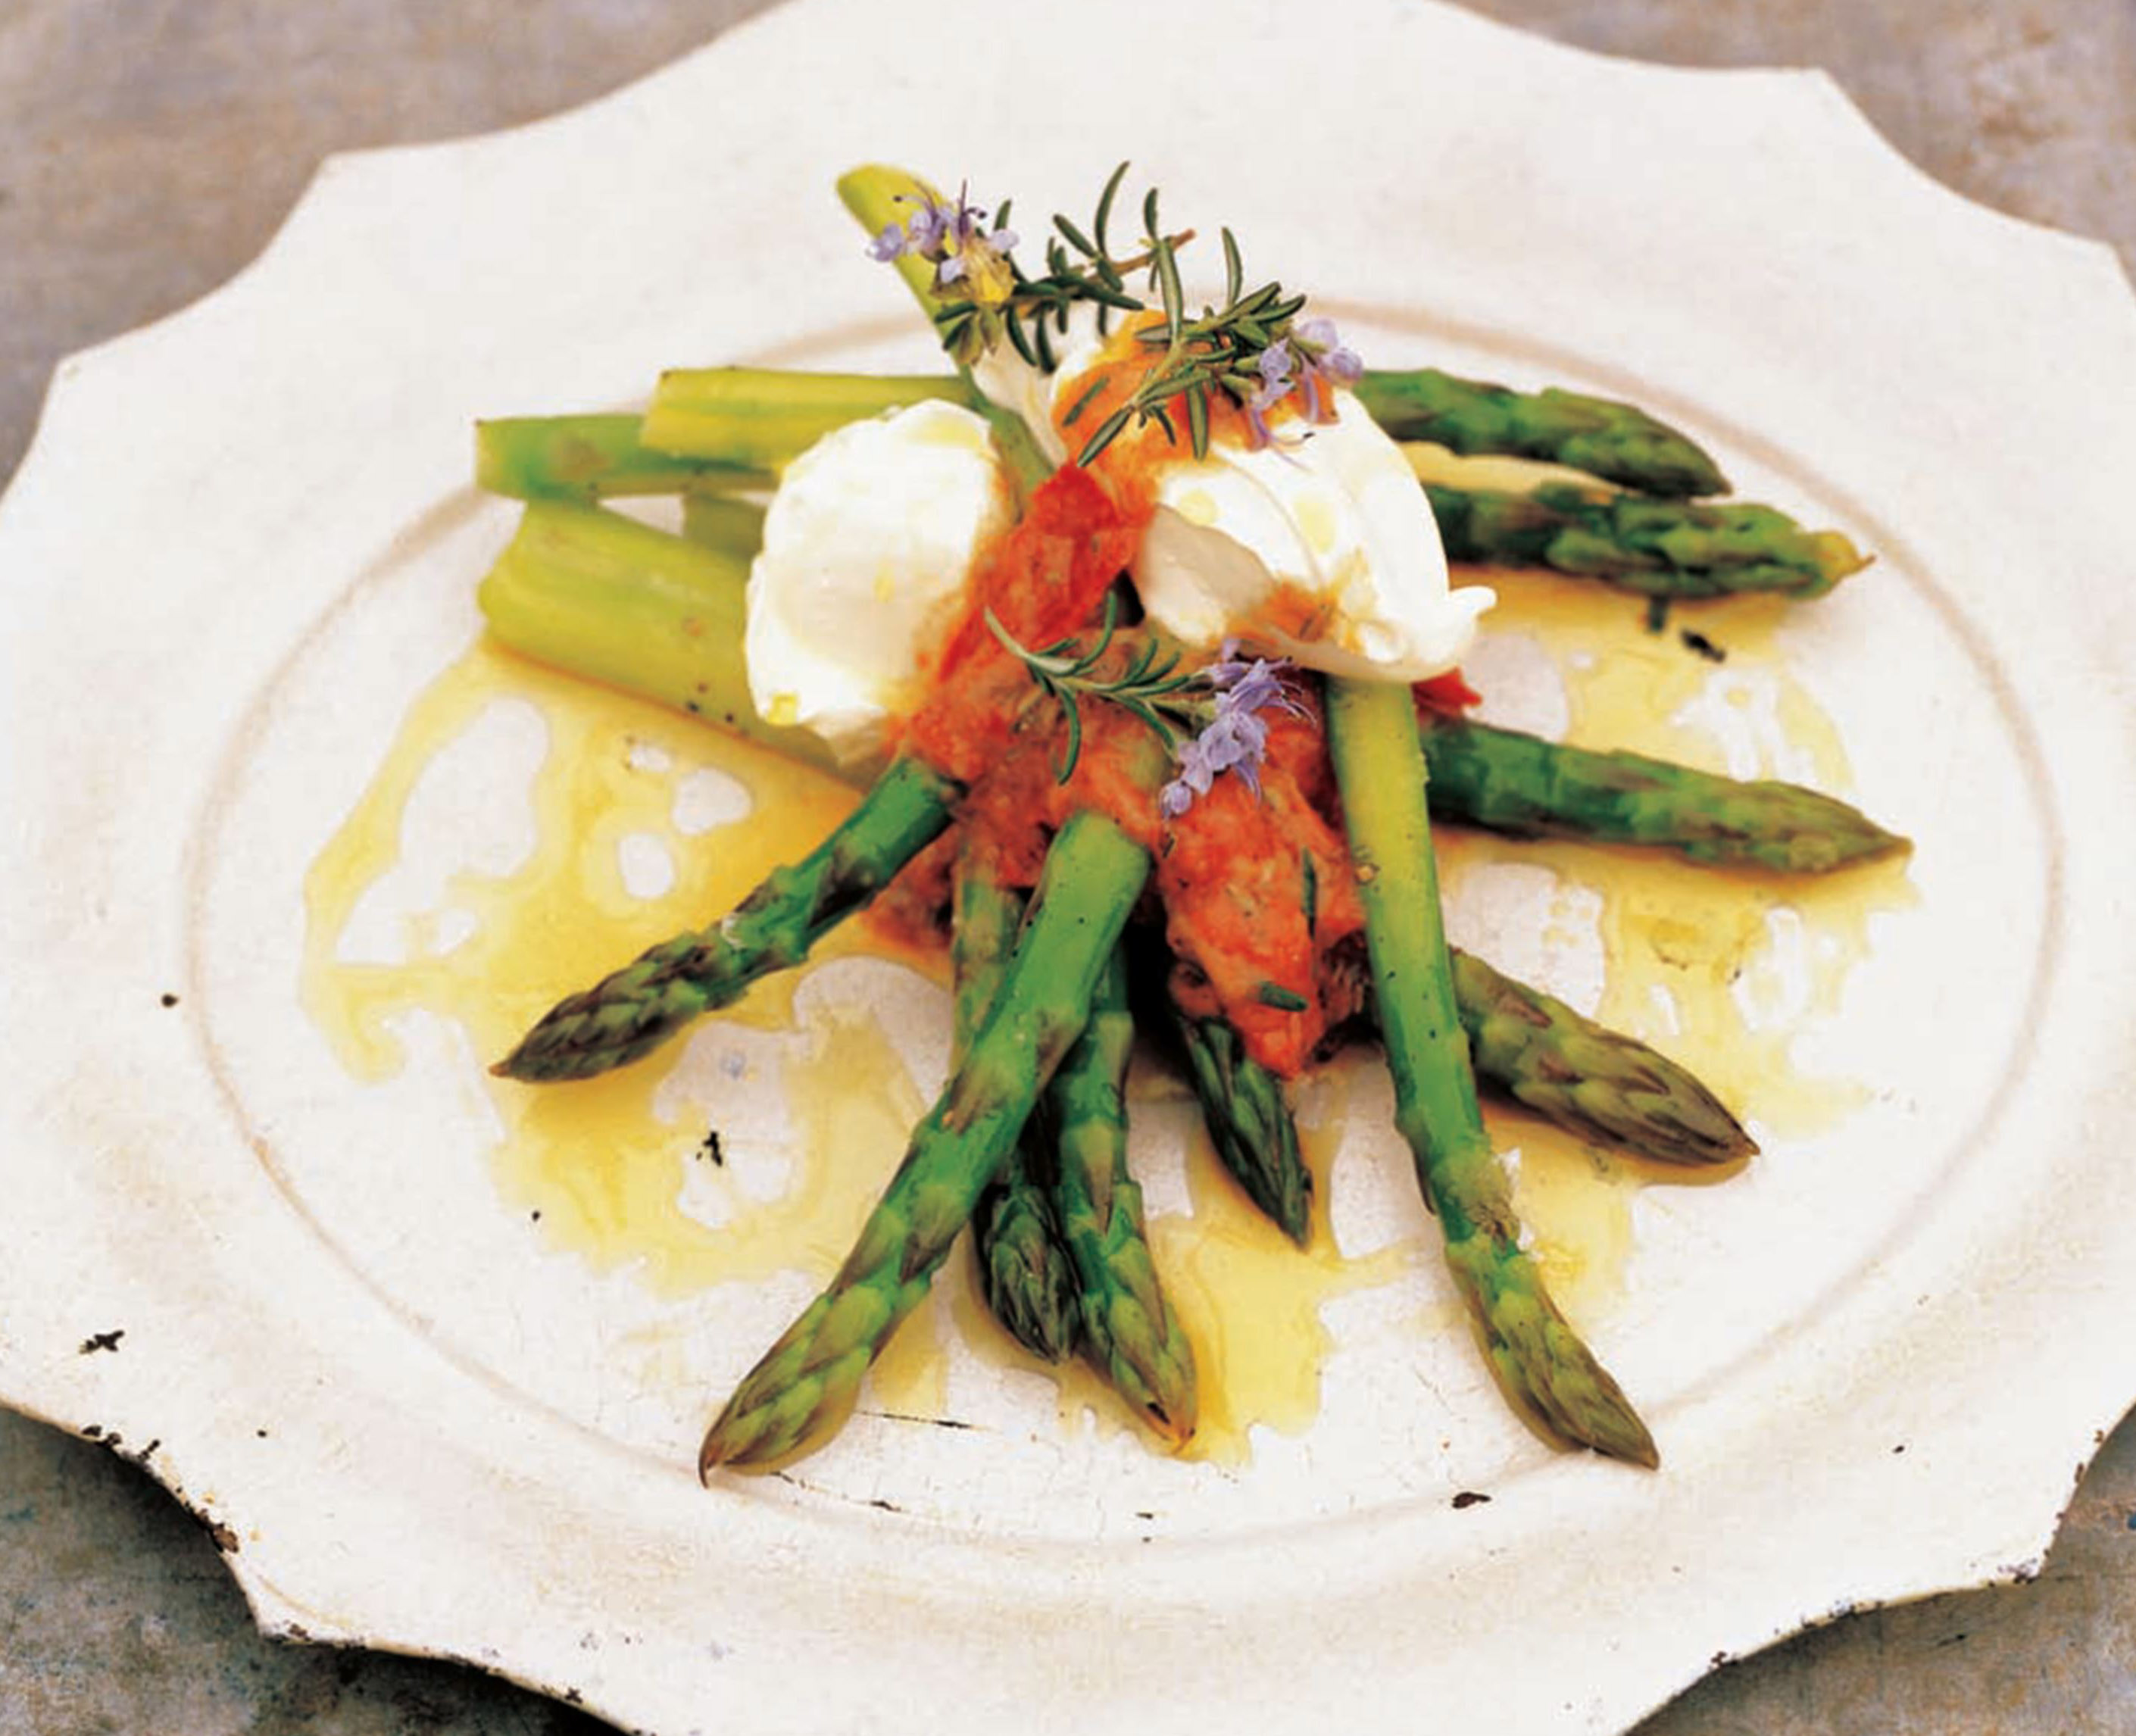 Asparagus with tomato dressing and crème fraîche